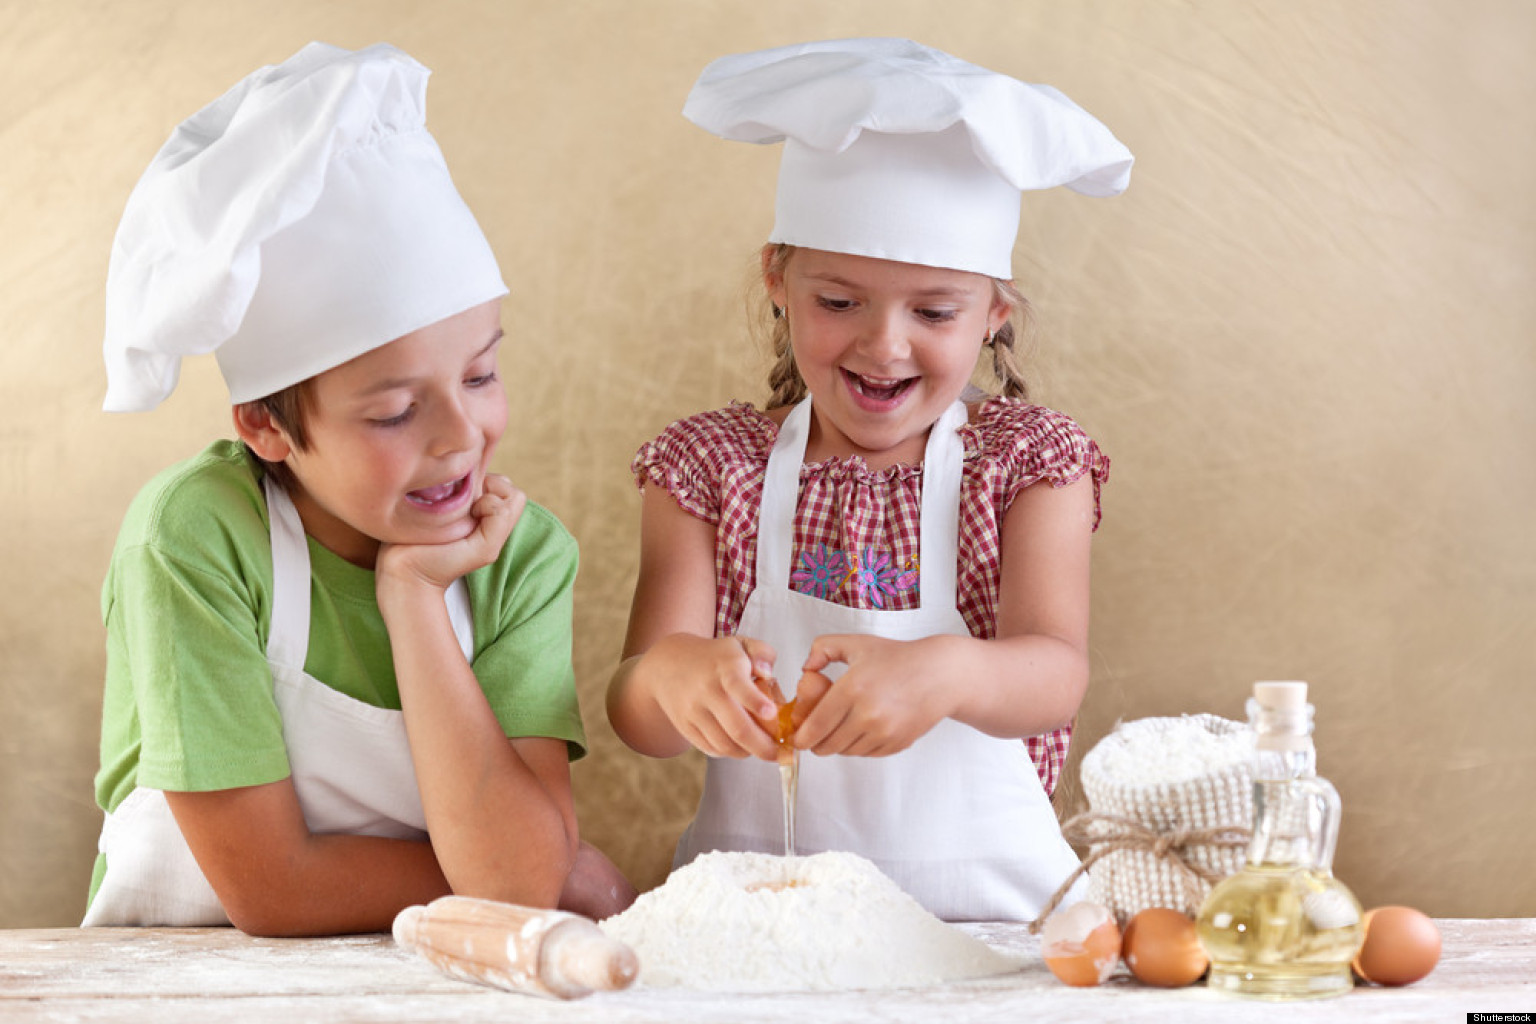 Cooking with kids at any age can be fun and easy. If your kids get cooking now, chances are they will keep up this good habit as they grow older. Read on for tips to get your kids cooking .